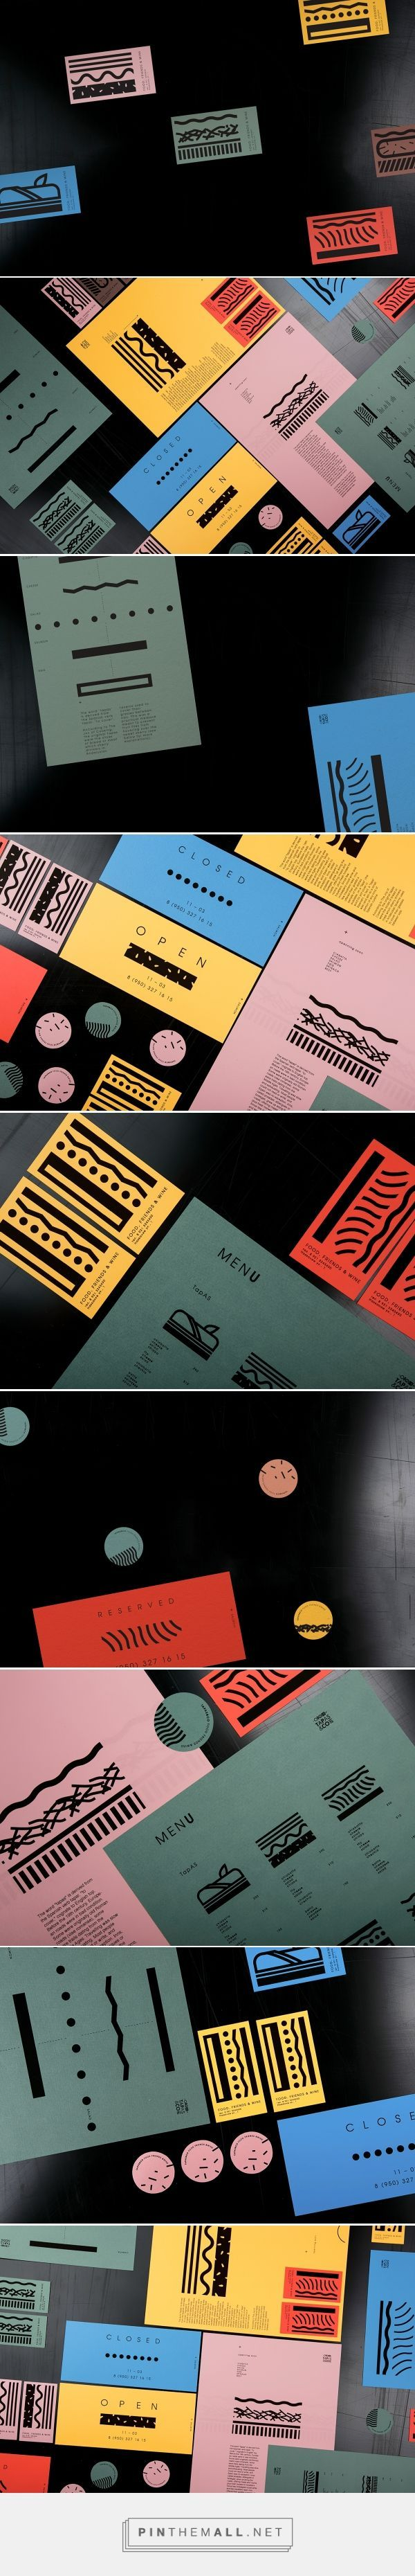 Tapas & Co. Restaurant Branding and Menu Design by Masha Portnova | Fivestar Branding Agency – Design and Branding Agency & Curated Inspiration Gallery